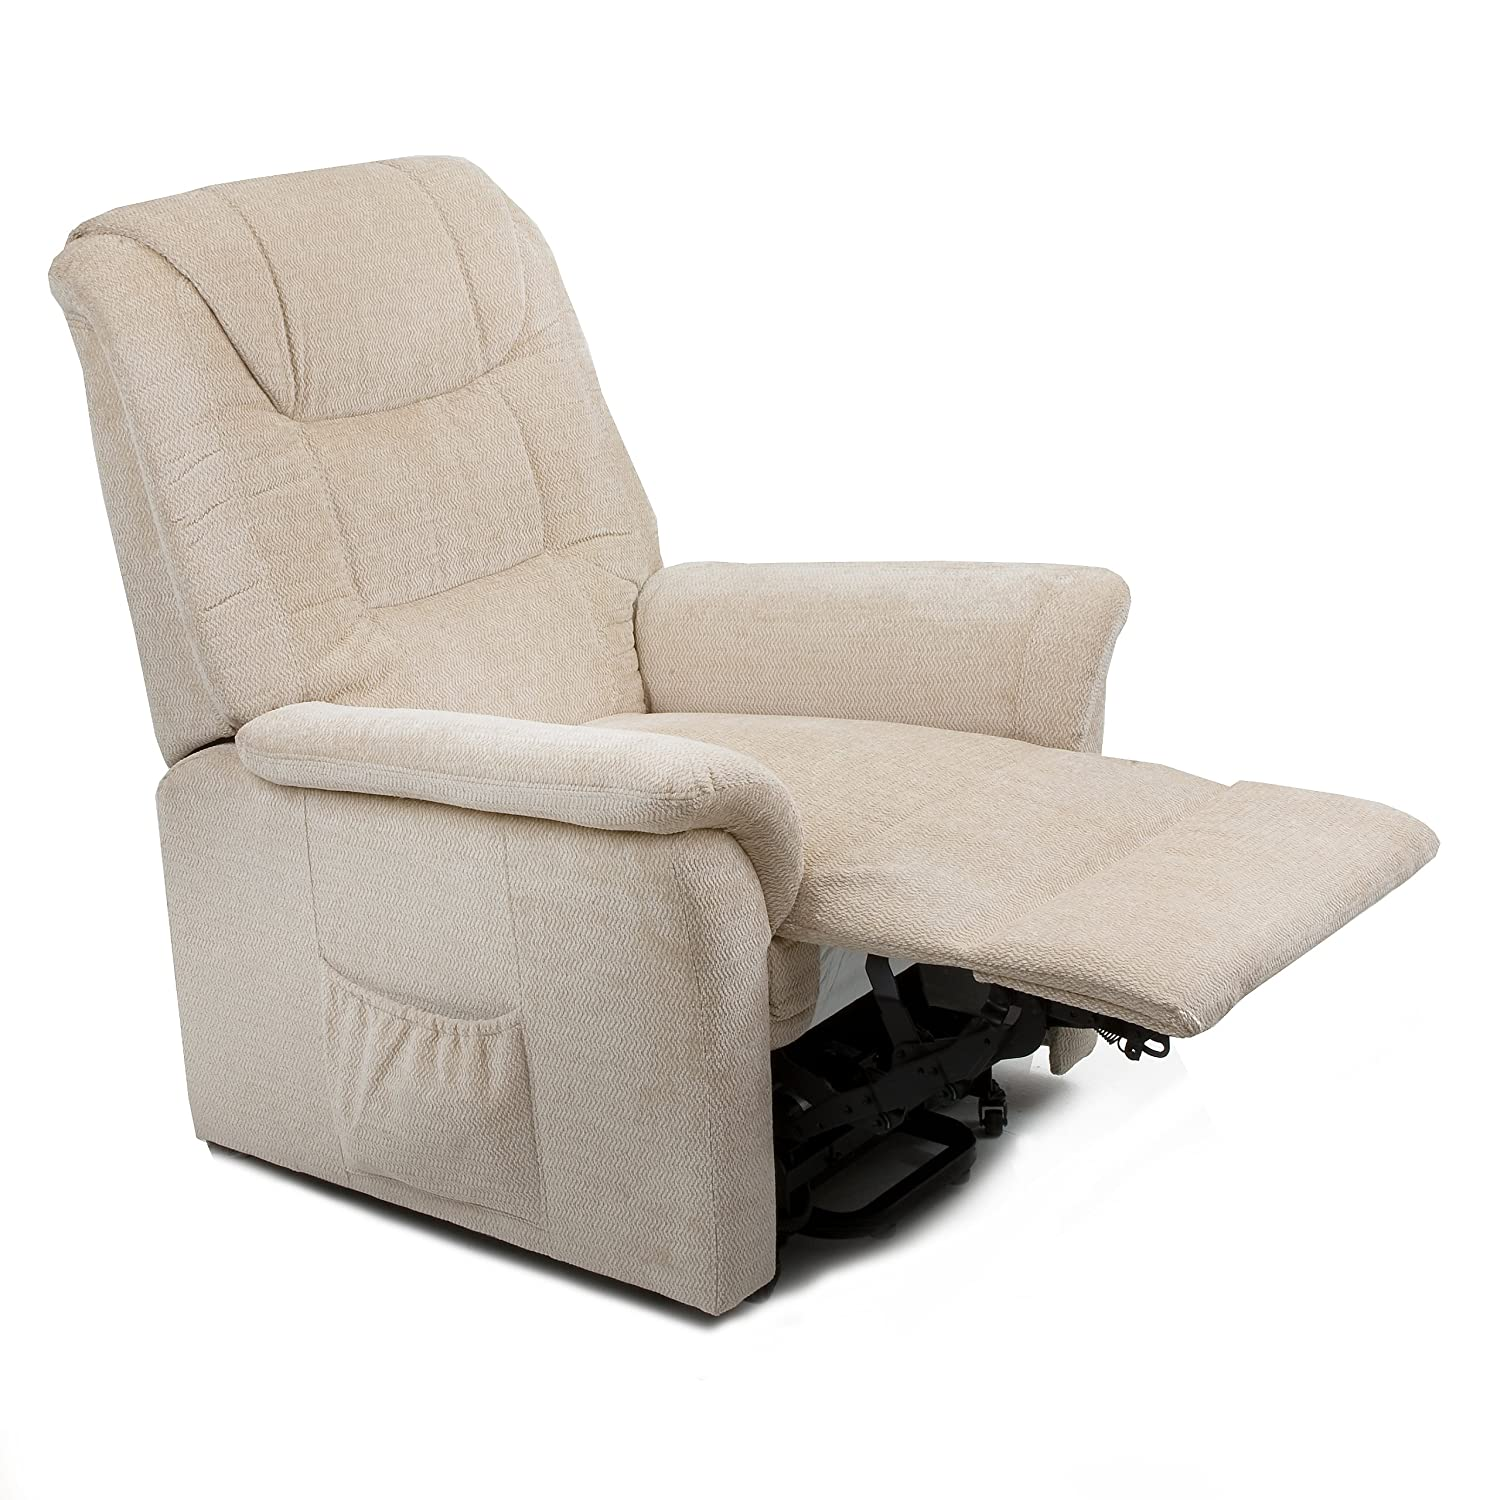 Riva Dual motor electric riser and recliner chair choice of